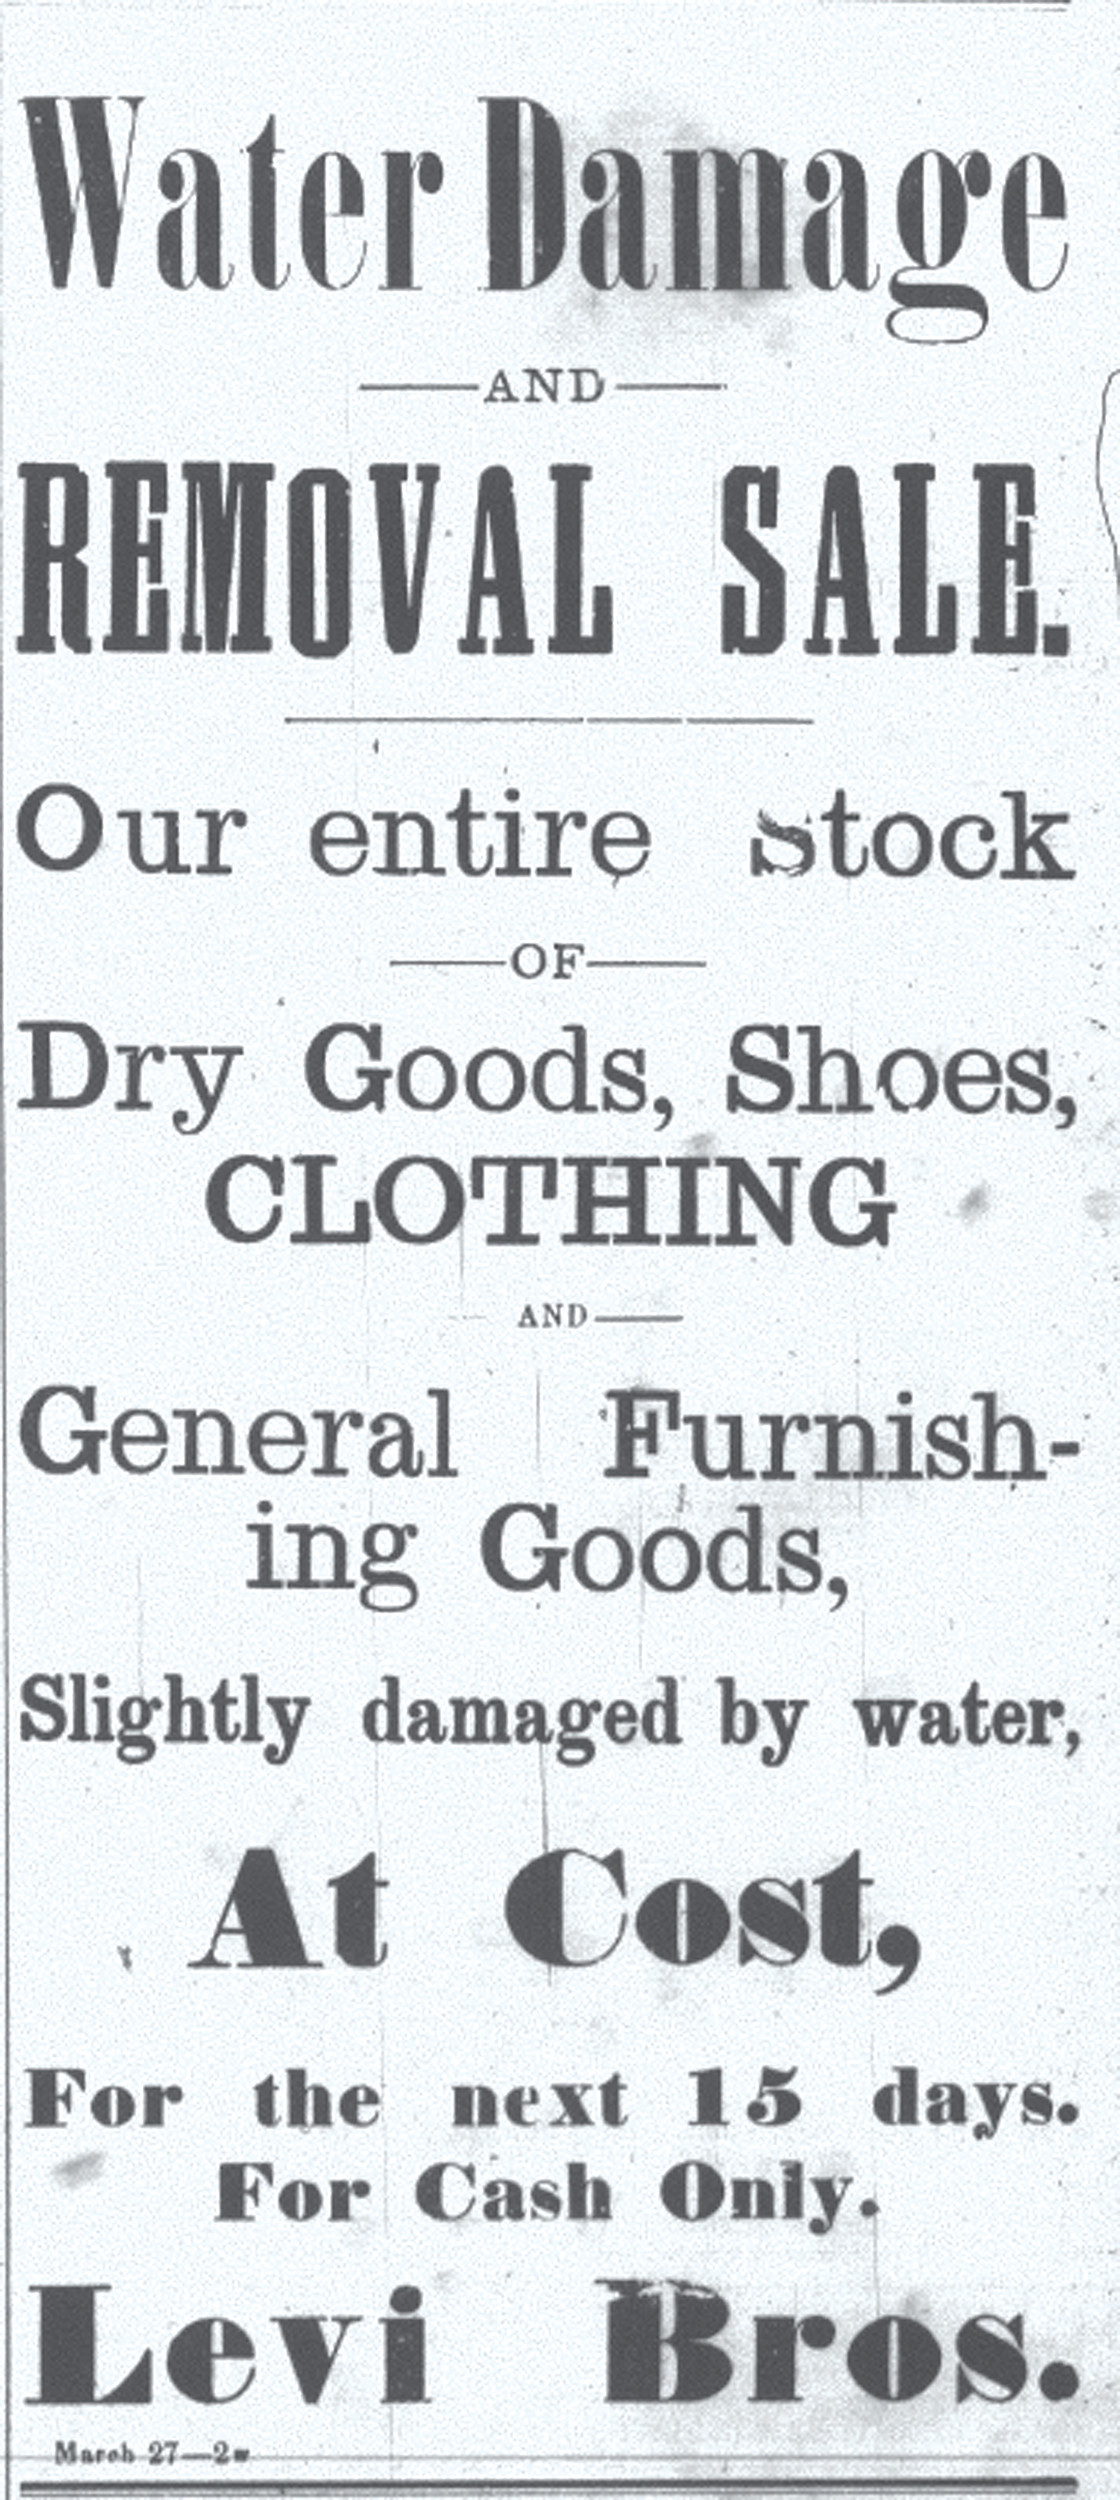 A sale ad for Levi Bros. in 1901 is seen.